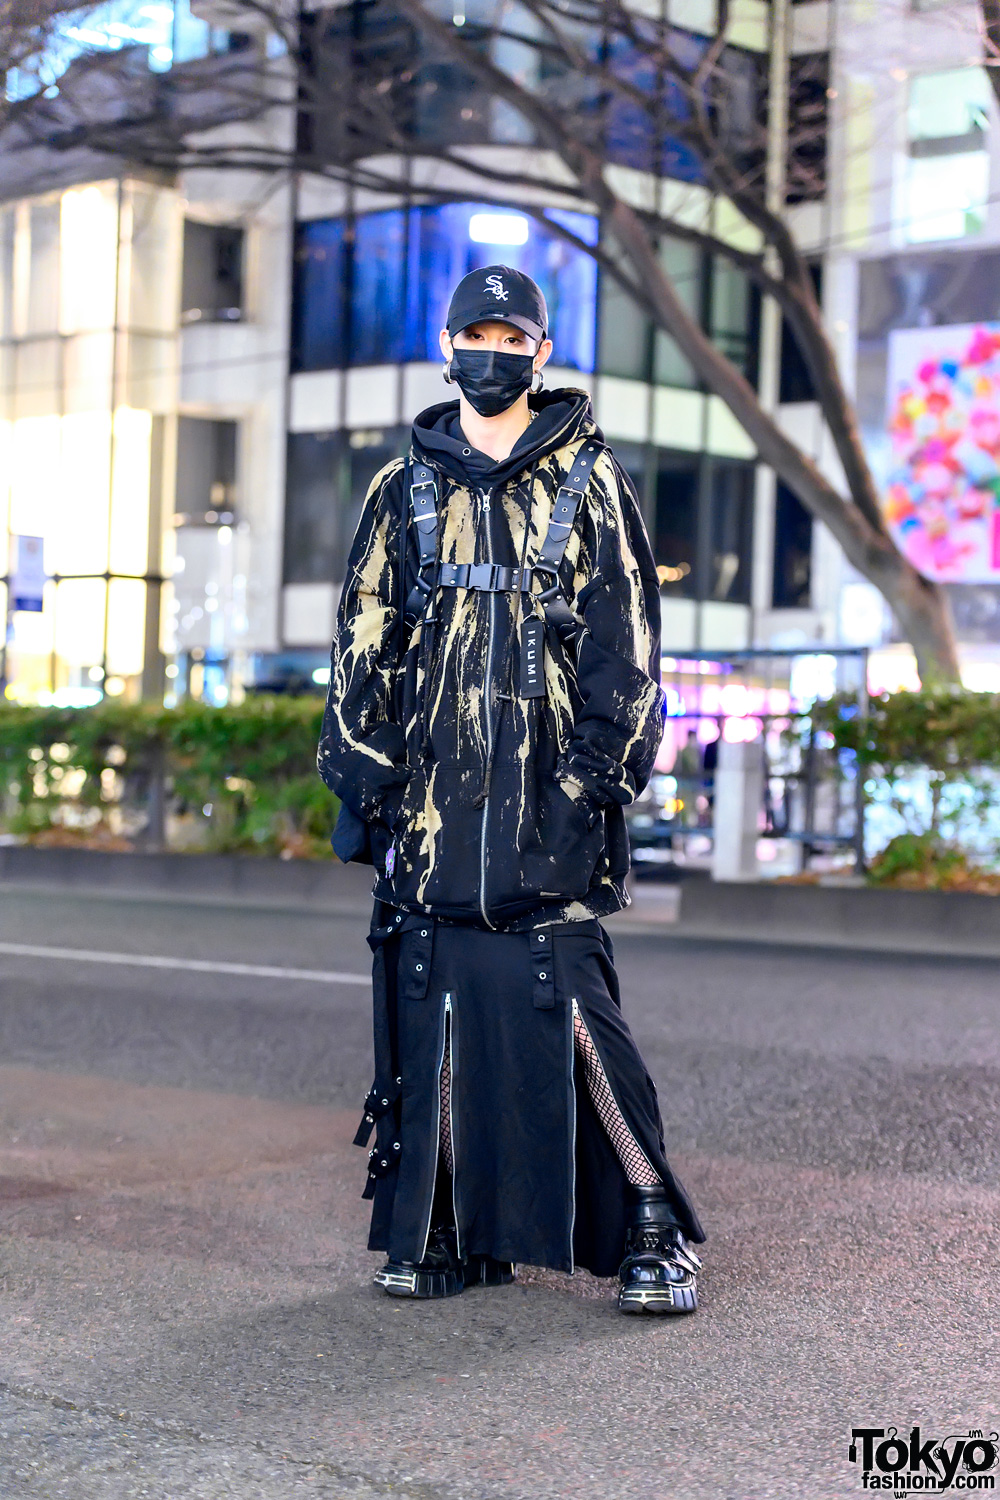 Monochrome Japanese Street Style w/ Ikumi Tokyo Hoodie, Leather Harness, Zippers Skirt, Face Mask & New Rock Boots